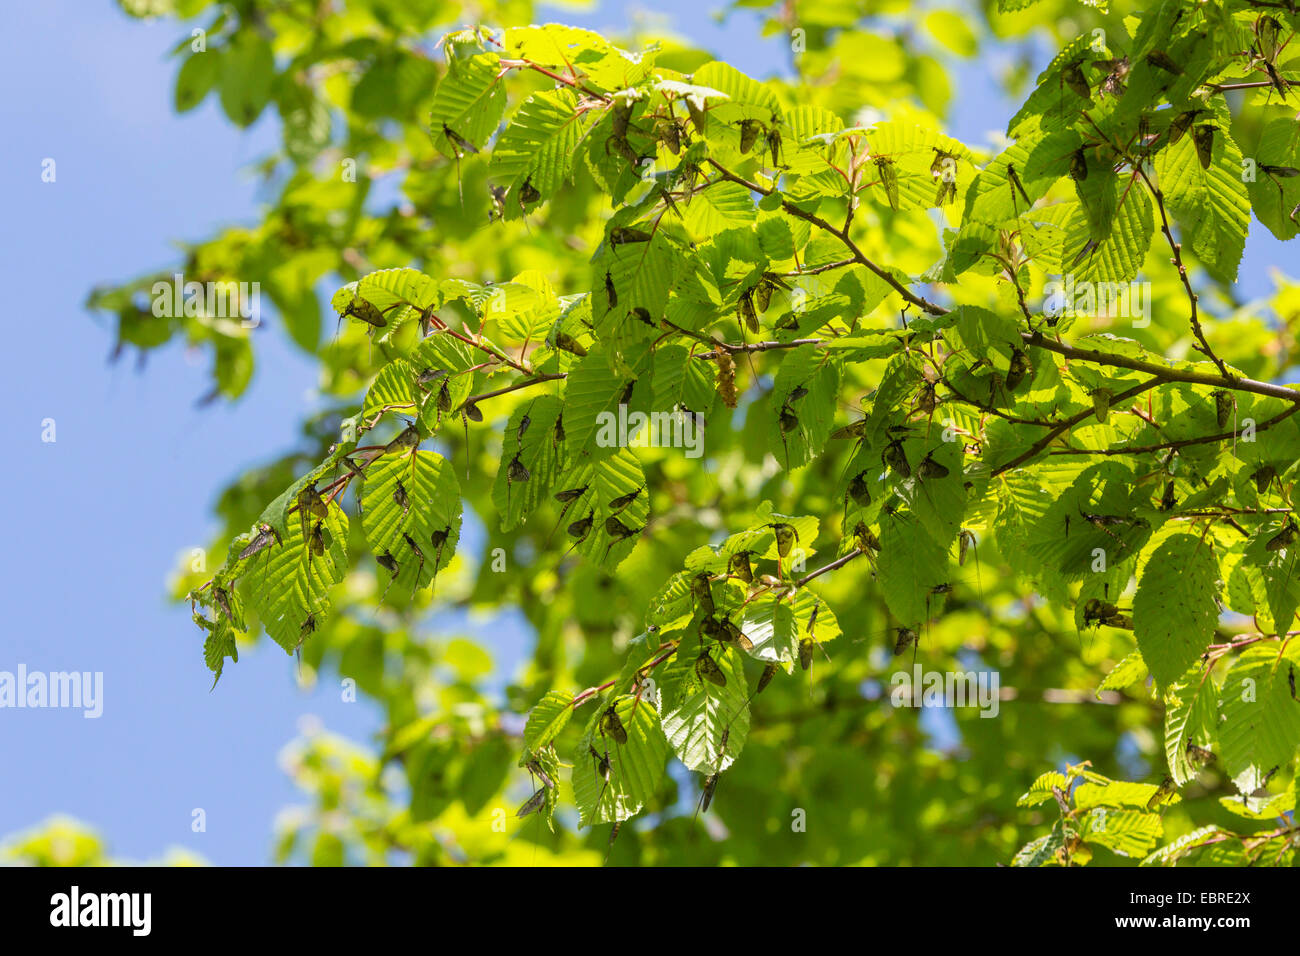 mayfly (cf. Ephemera vulgata), several imagines on leaves of a hornbeam after skinning, Germany, Bavaria - Stock Image